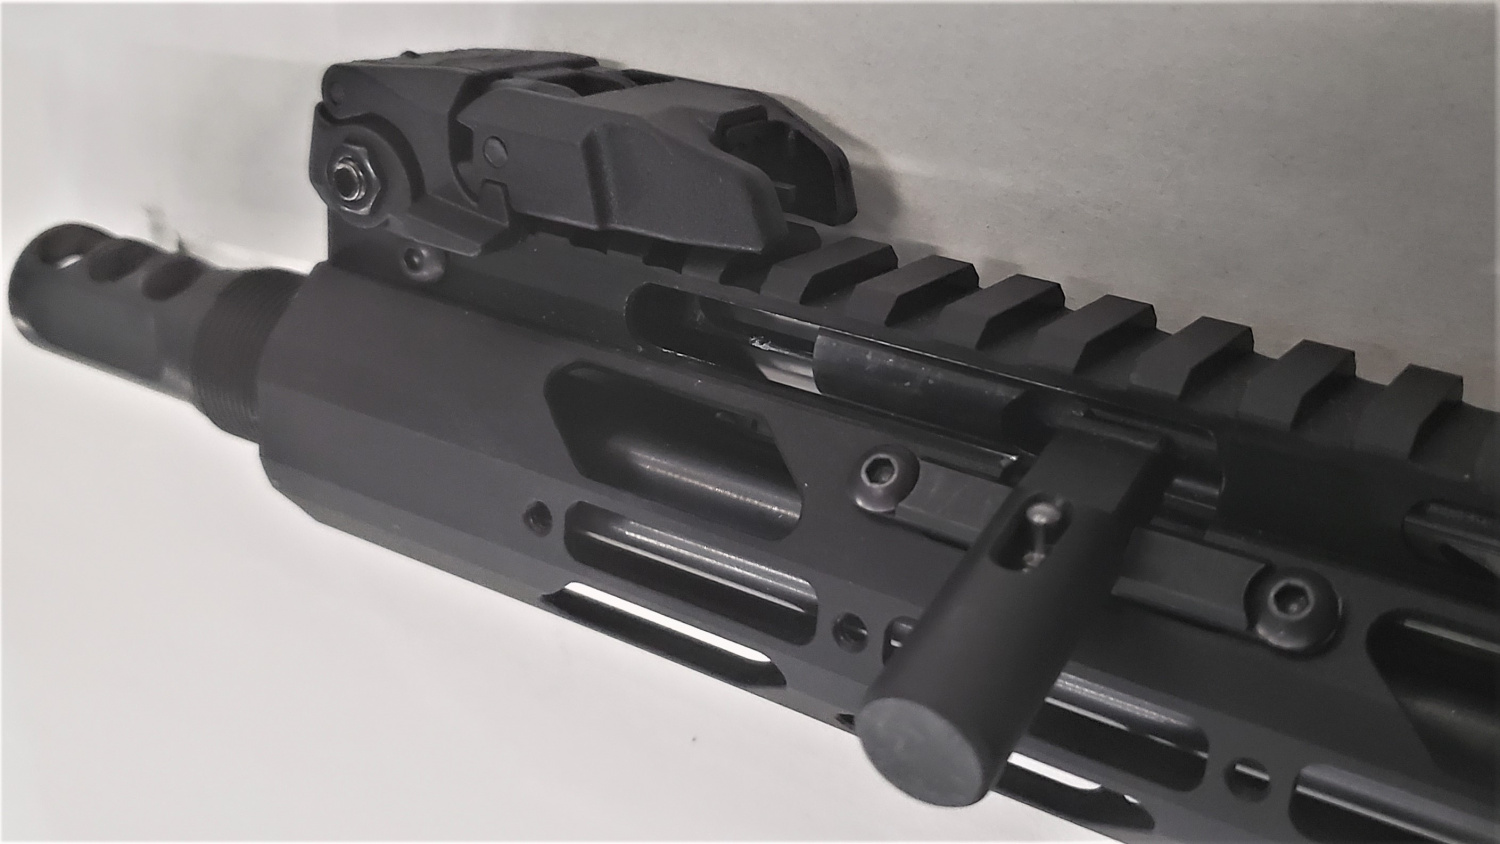 Charging handle in the rearward position